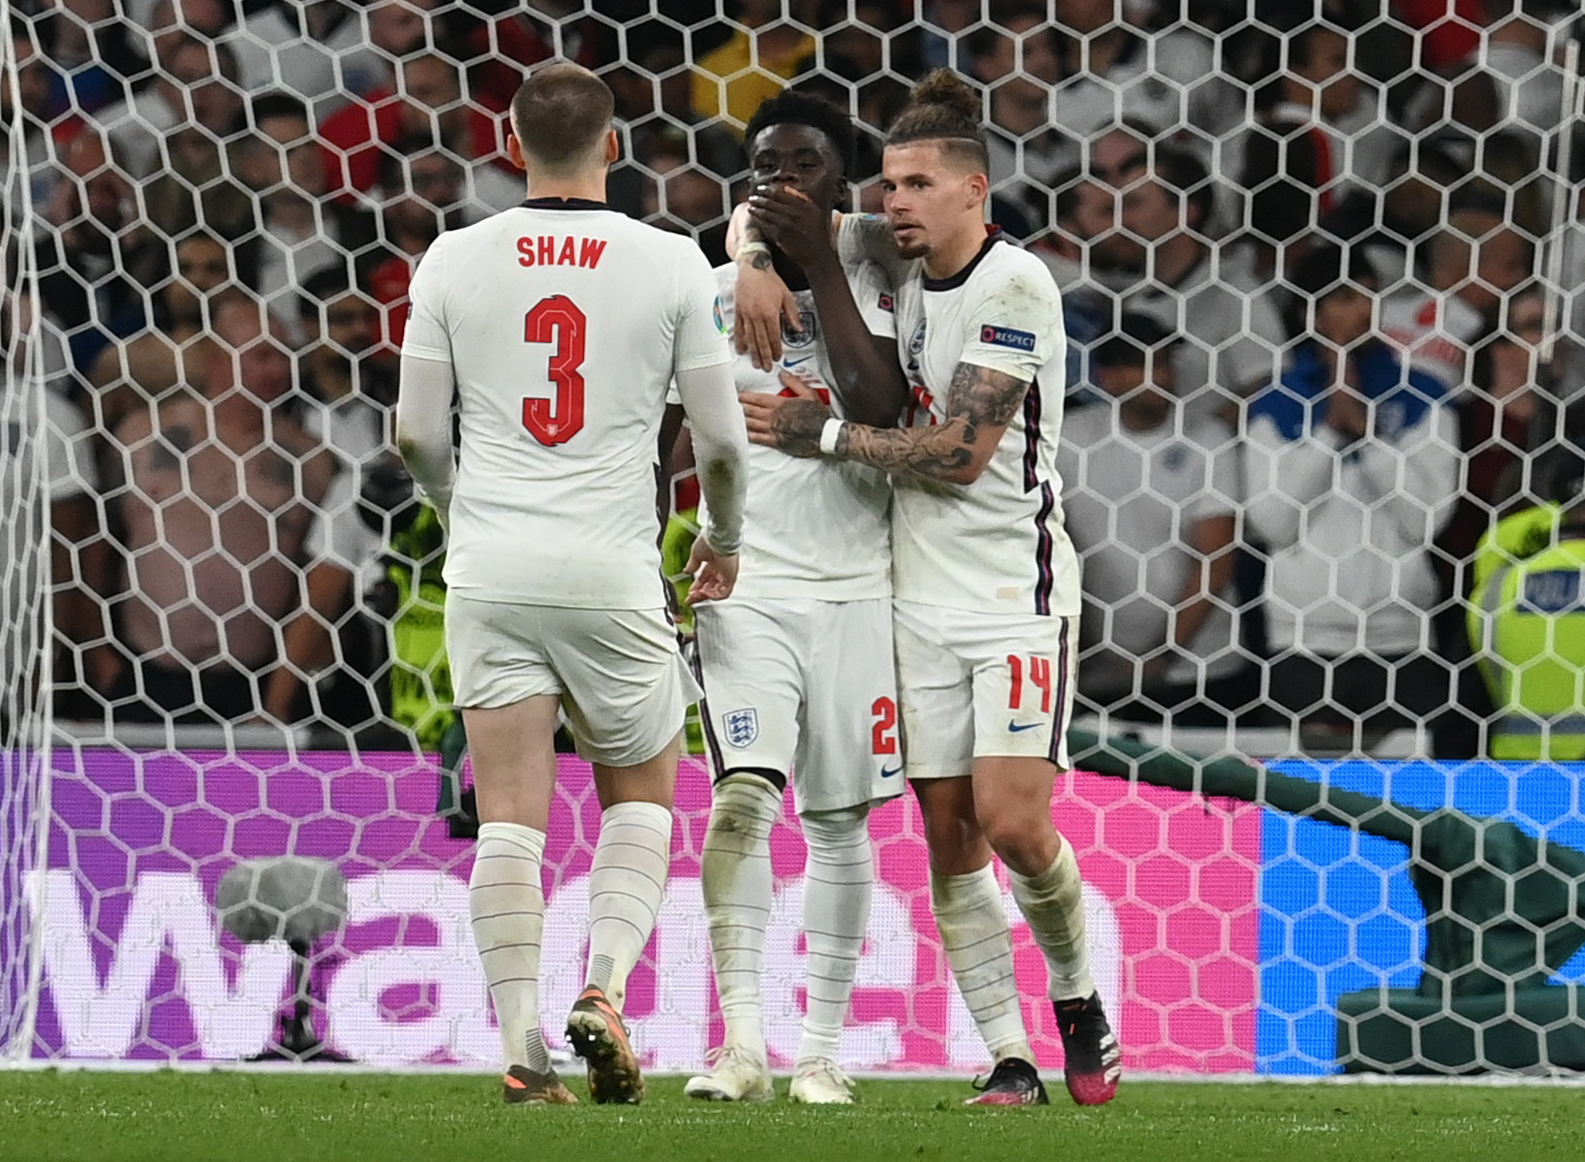 FA condemns racist abuse of players after England's Euro 2020 final loss |  Reuters